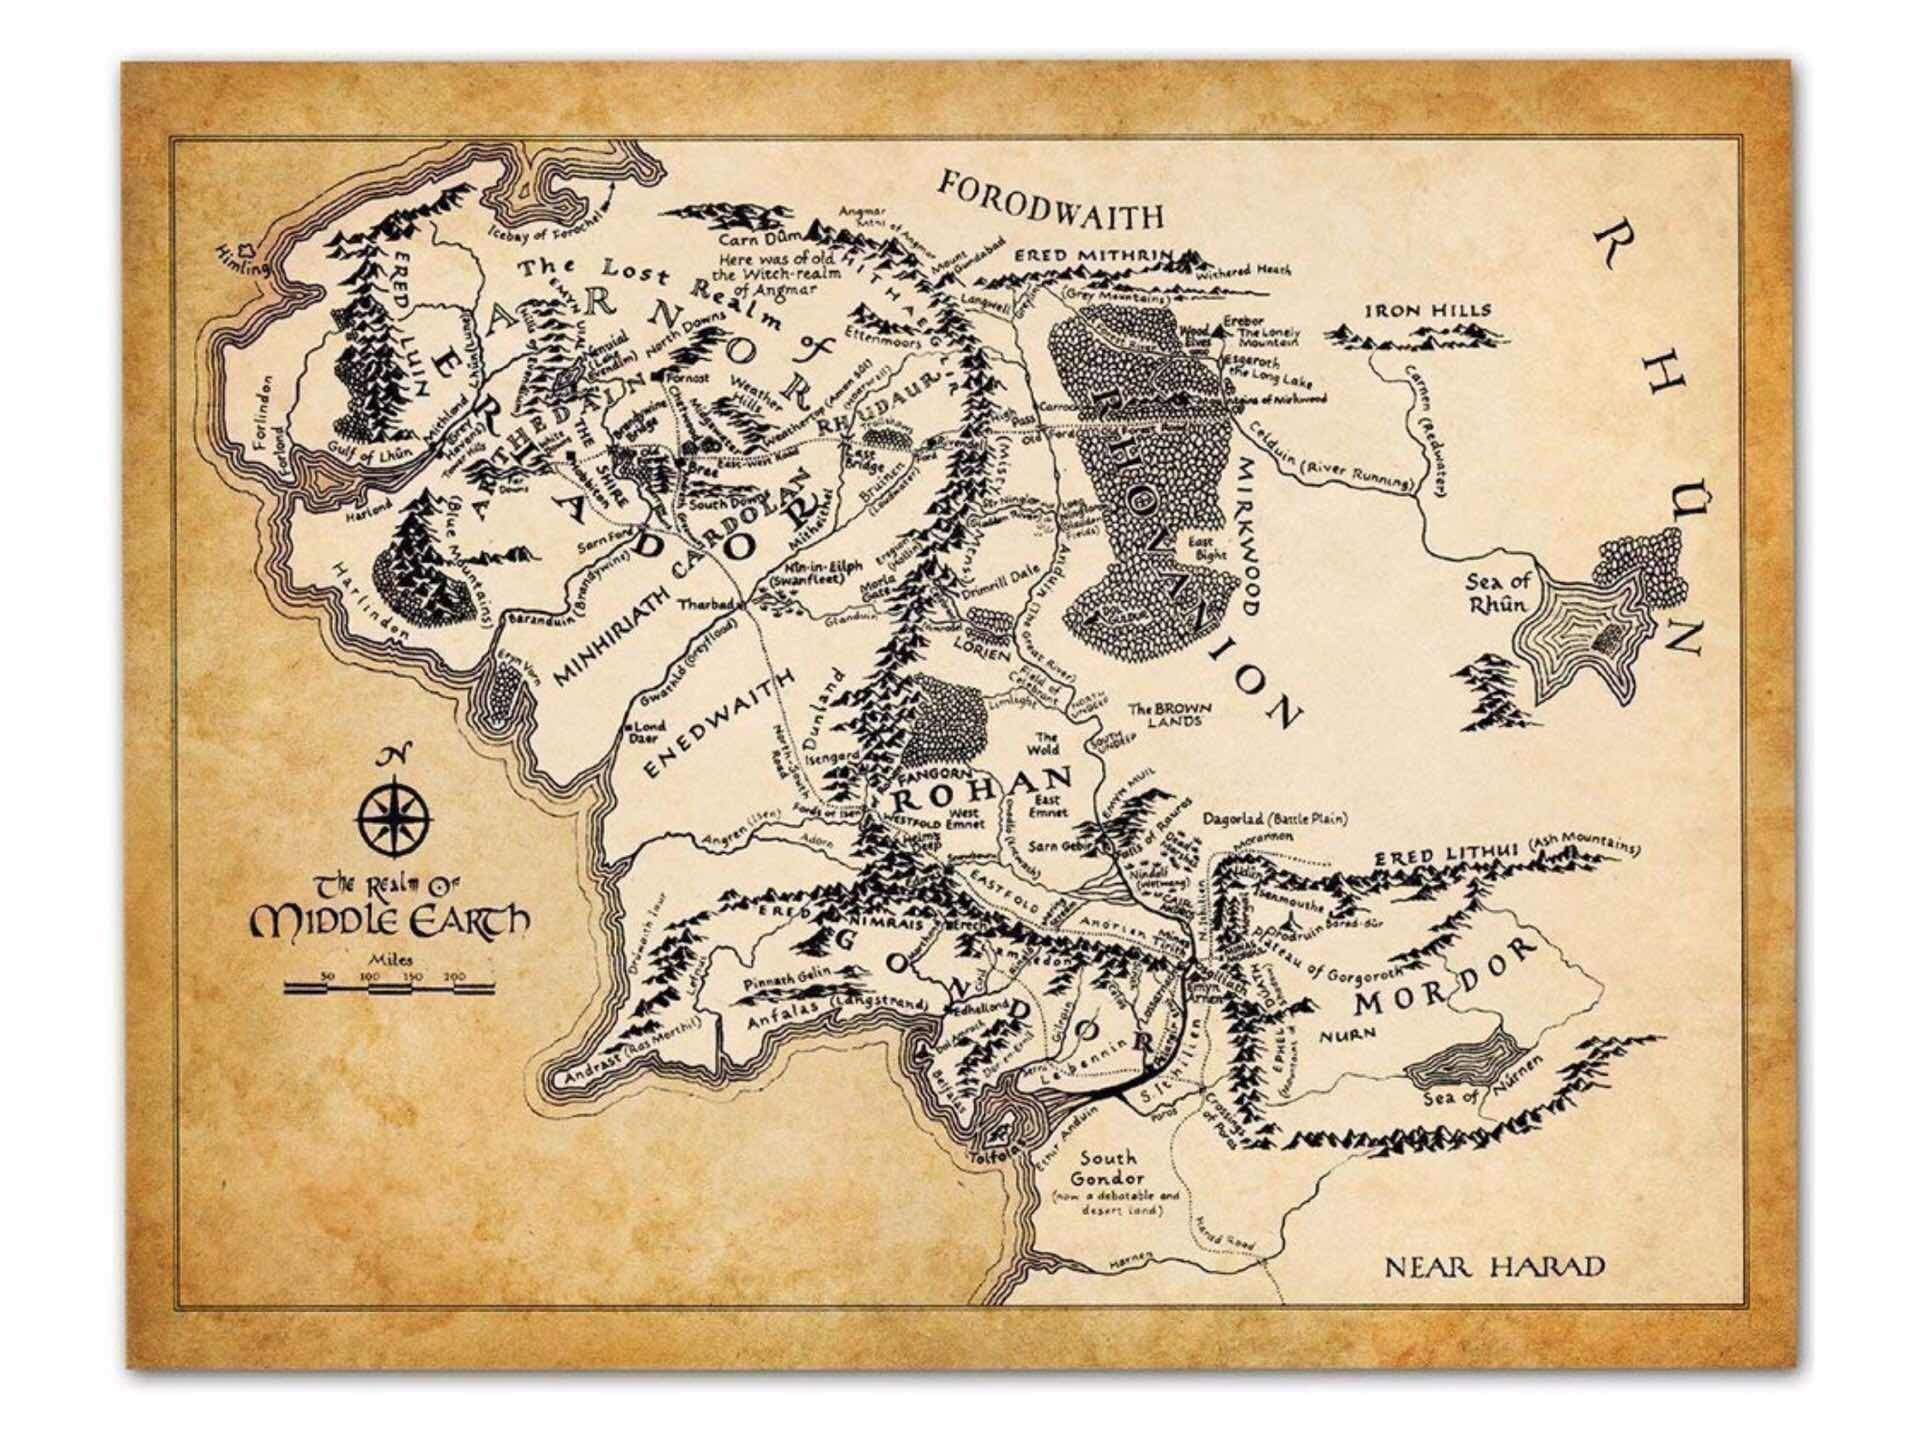 maps-of-fictional-worlds-guide-lord-of-the-rings-middle-earth-2